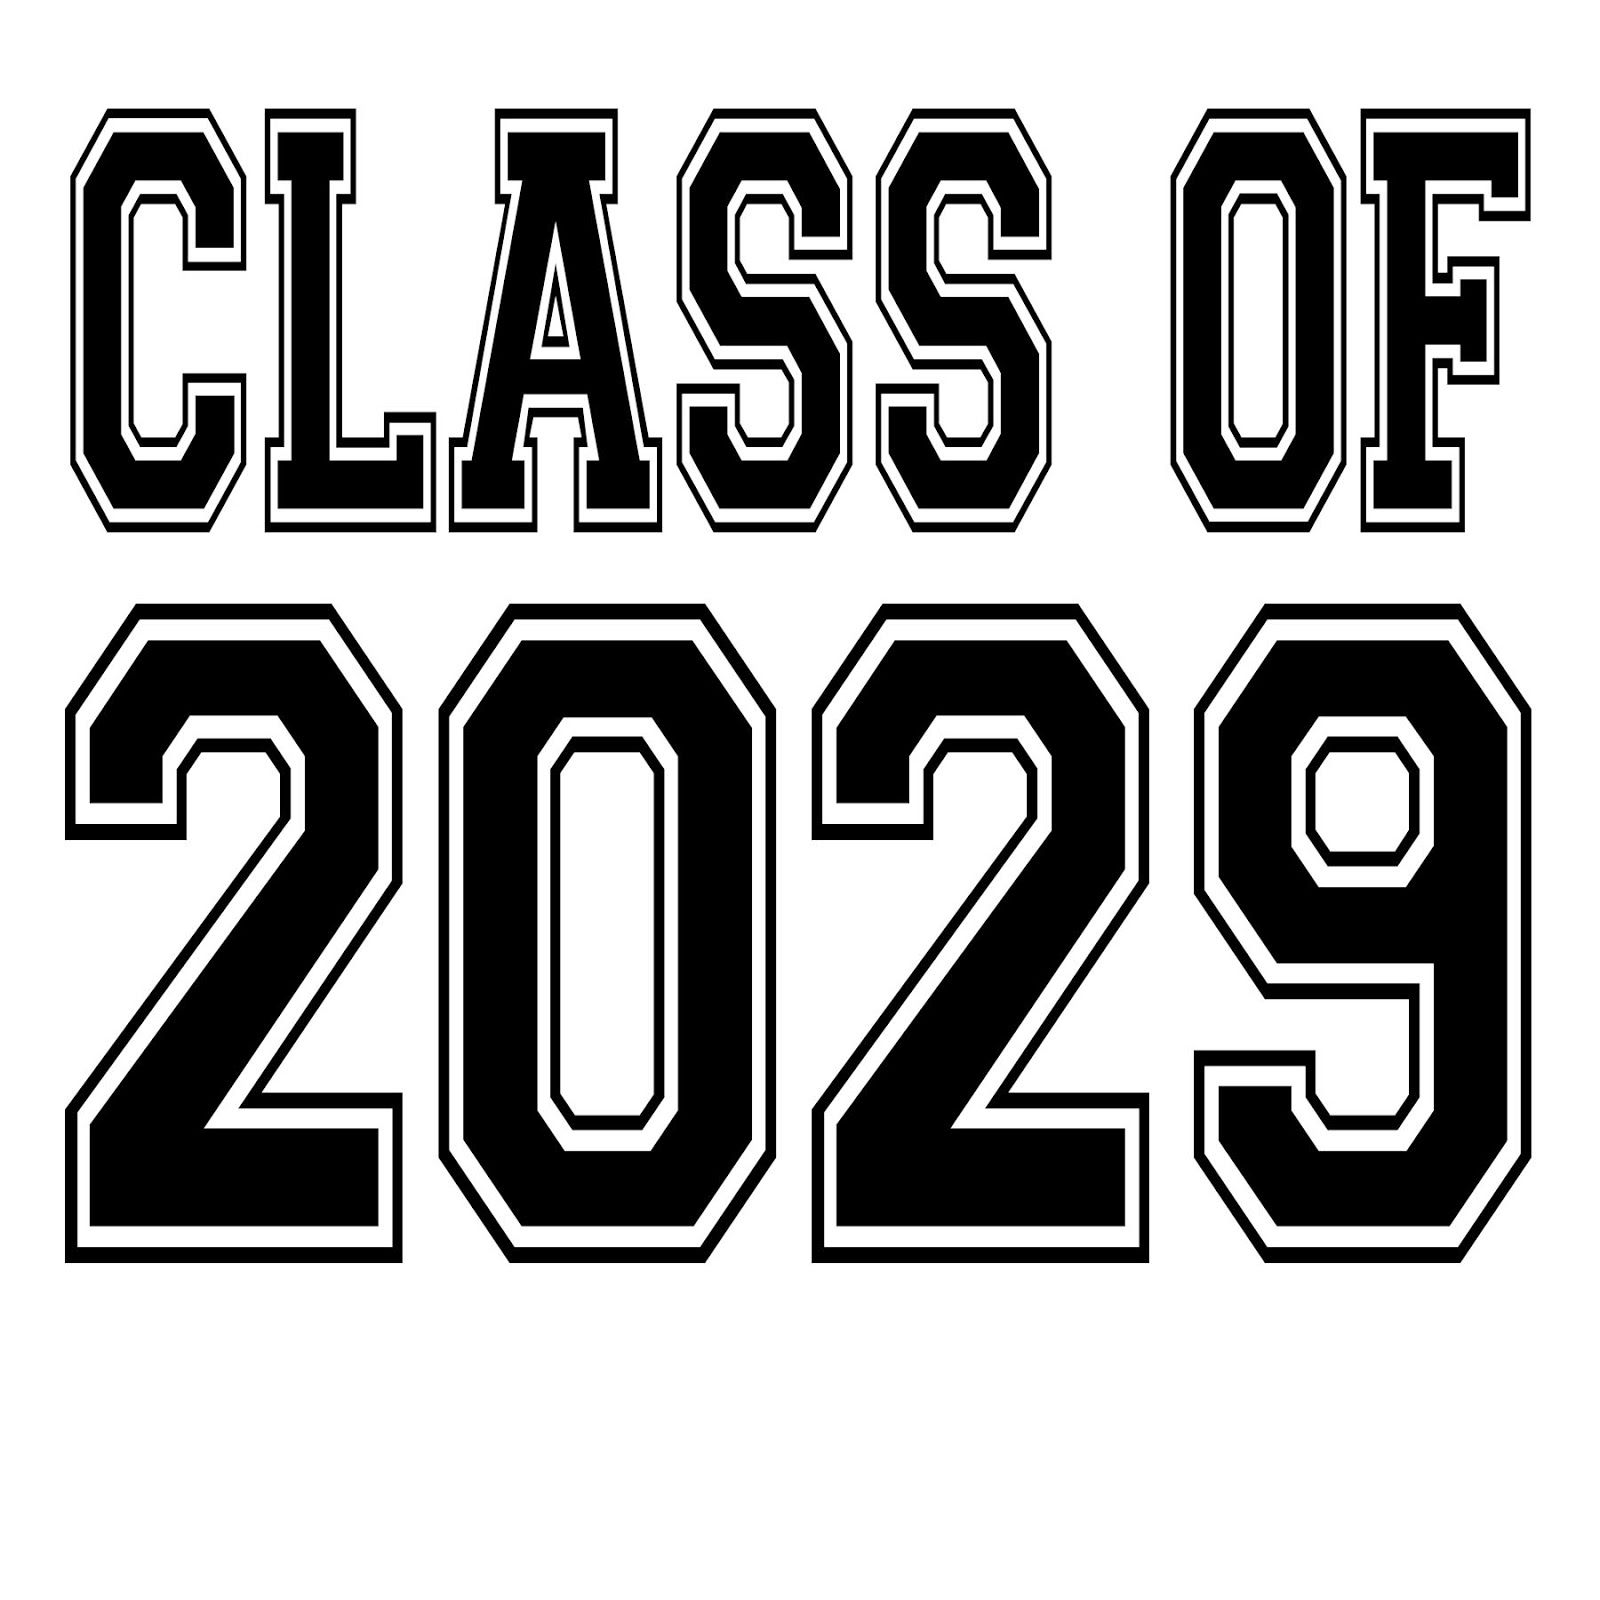 watch out for the woestmans: Class of 2028 2029 Shirt Tutorial.